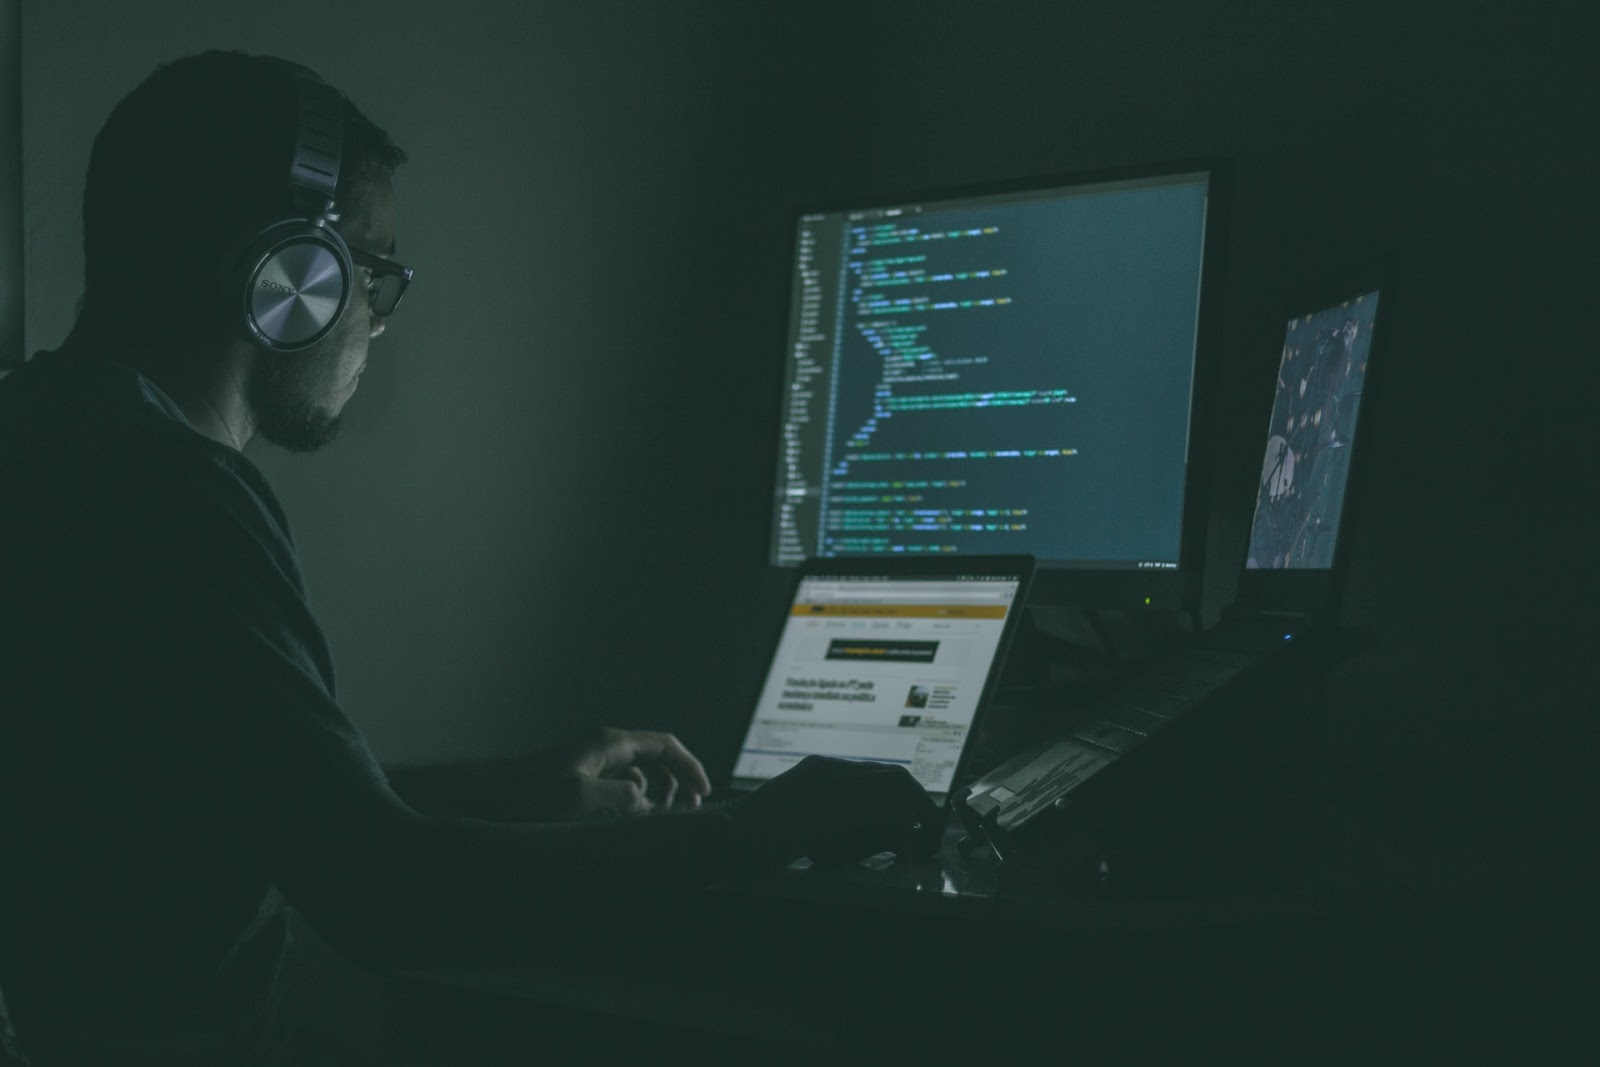 a person wearing headphones and coding on multiple computers